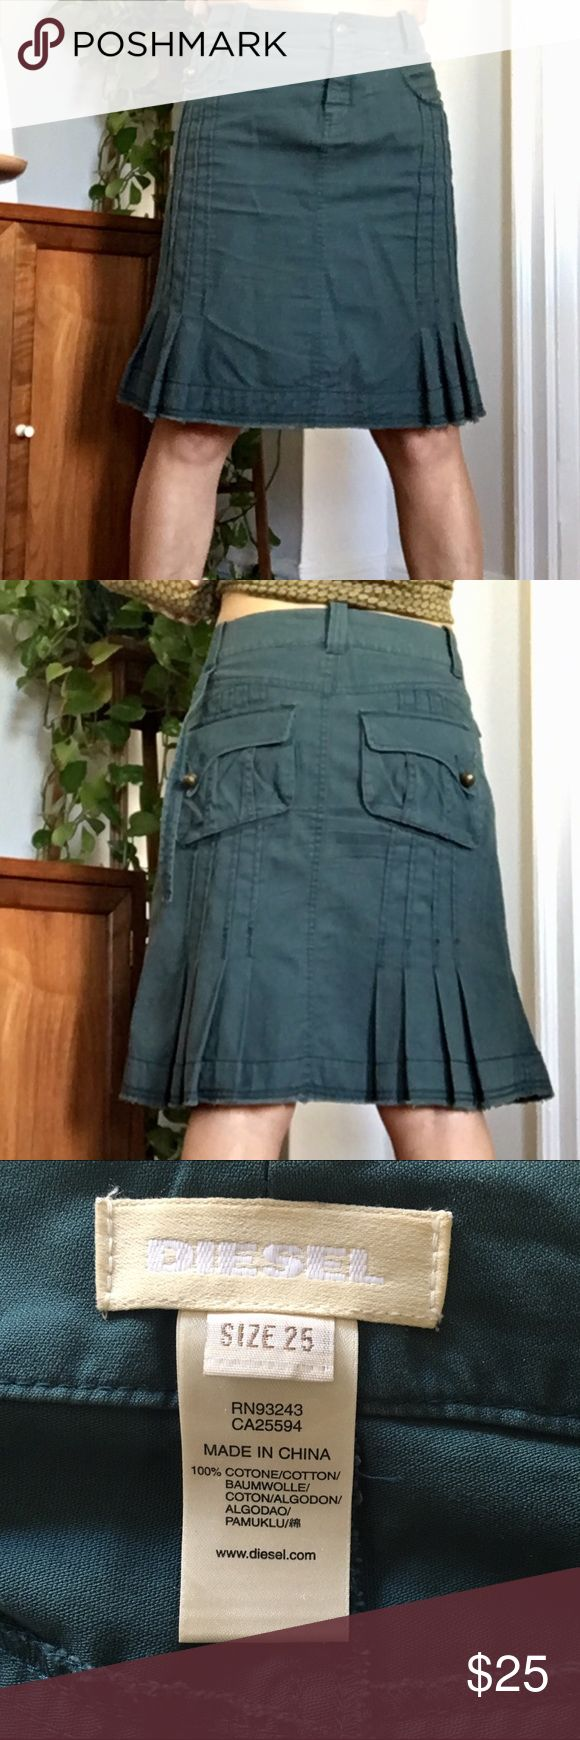 DIESEL Skirt Size 25 100% cotton skirt with great pocket and pleat details.  Unfortunately it is a bit too large in the waist for me. Waist is 14.75 inches across. Length is 19.5 inches.  The color is a blue green/teal color.   Smoke and pet free home. Diesel Skirts A-Line or Full